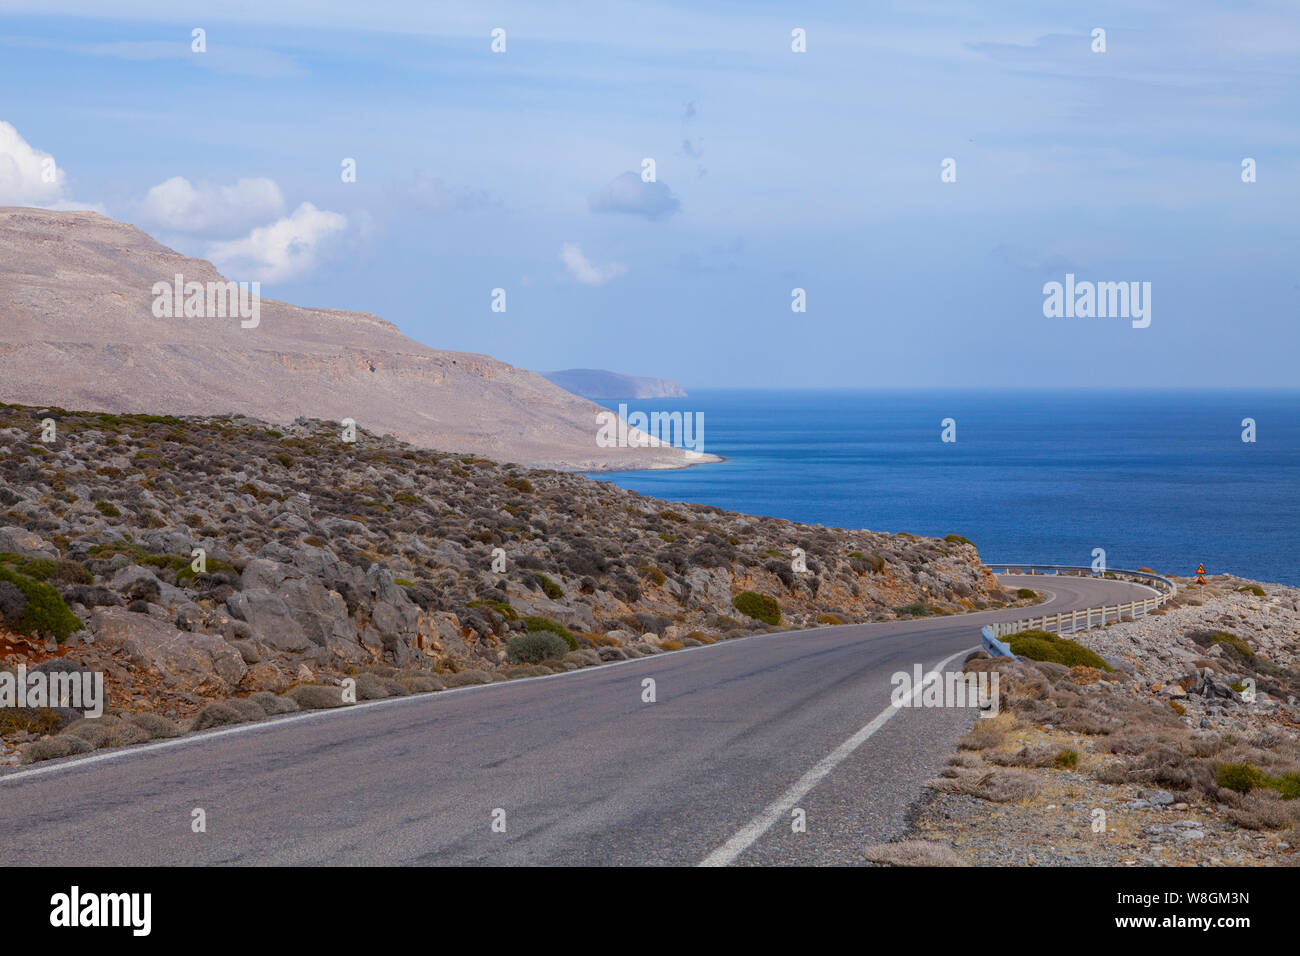 Image of road in the mountains. Crete, Greece Stock Photo